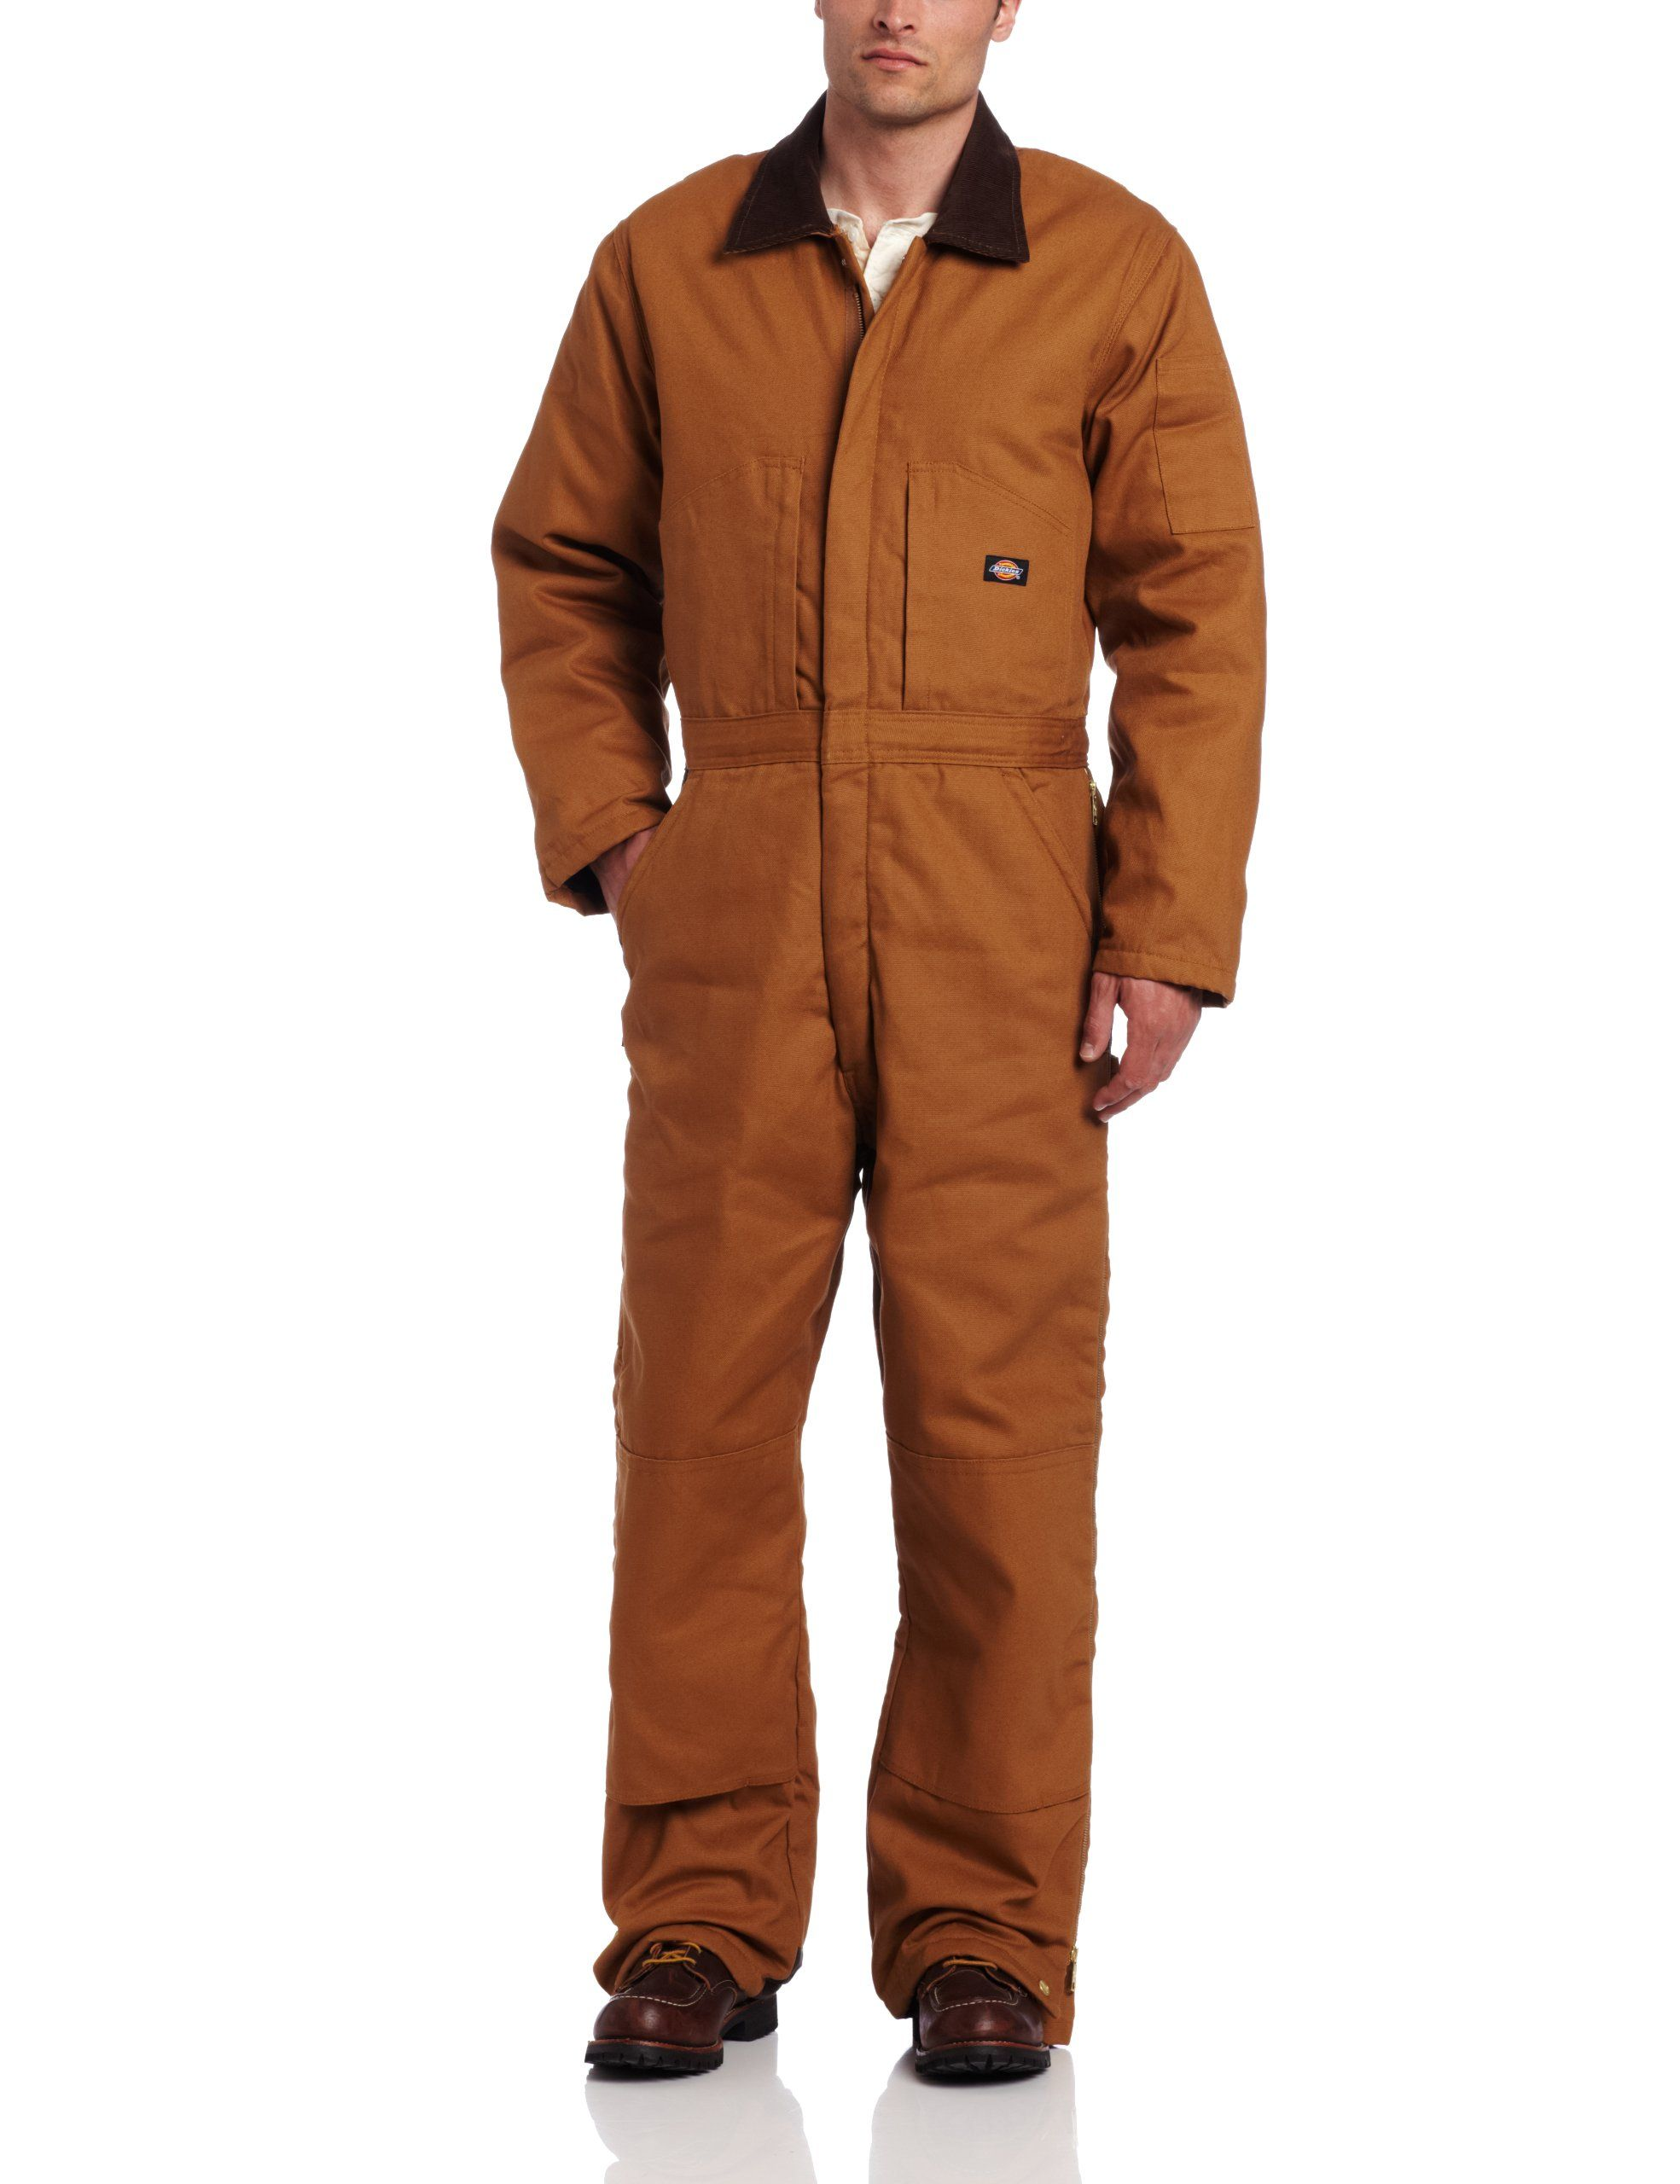 dickies men s insulated coverall brown duck small on insulated overalls for men id=93230